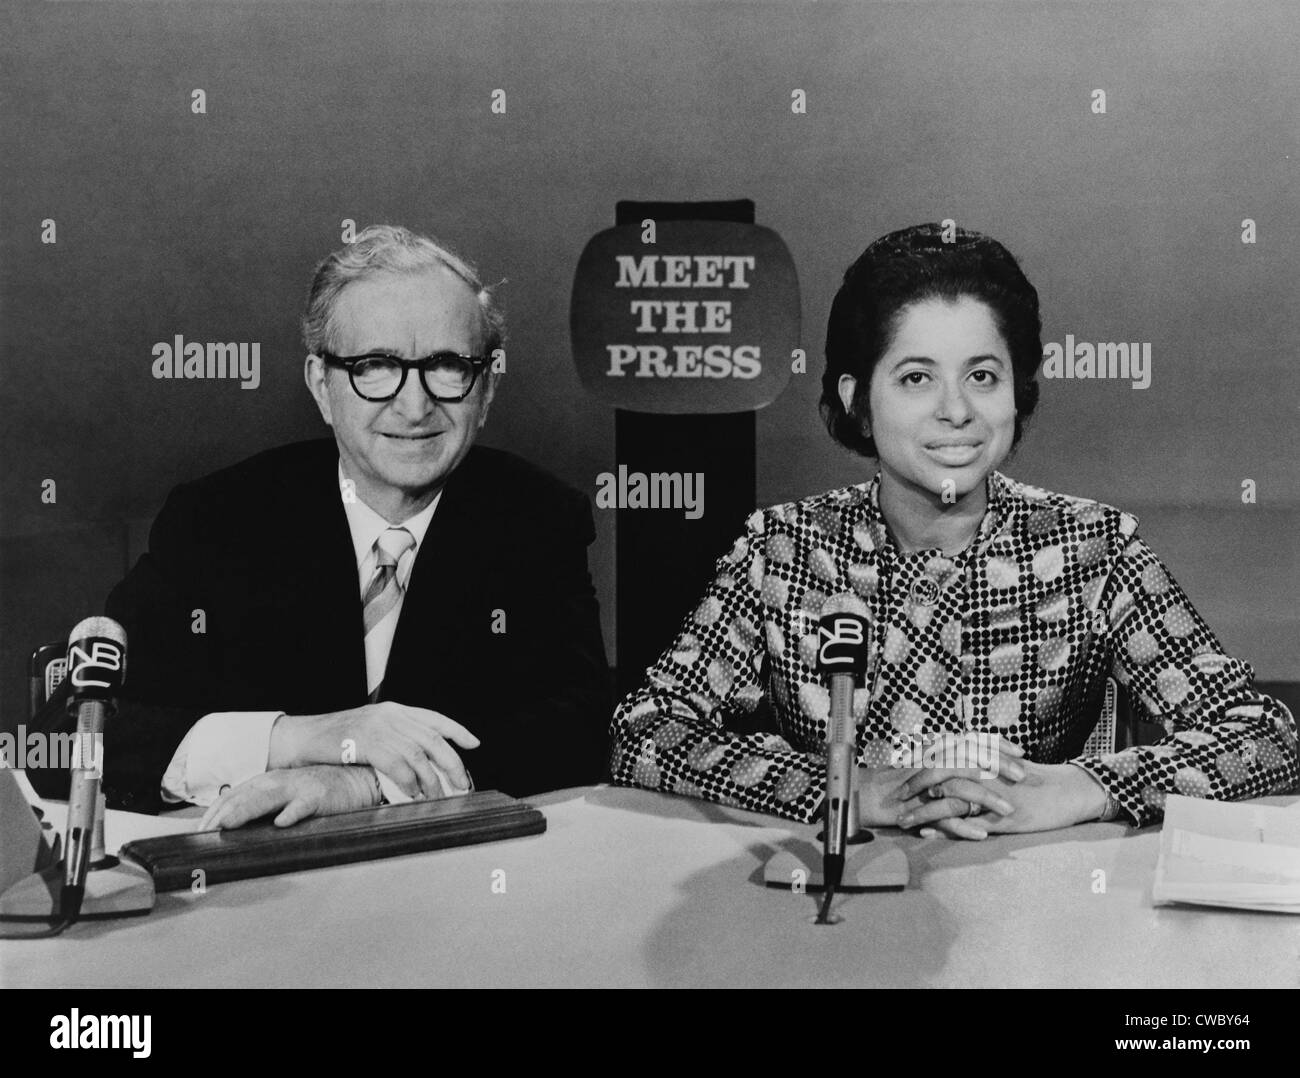 Patricia Roberts Harris (1924-1985), with Lawrence Spivak, host of the NBC's MEET THE PRESS television program - Stock Image